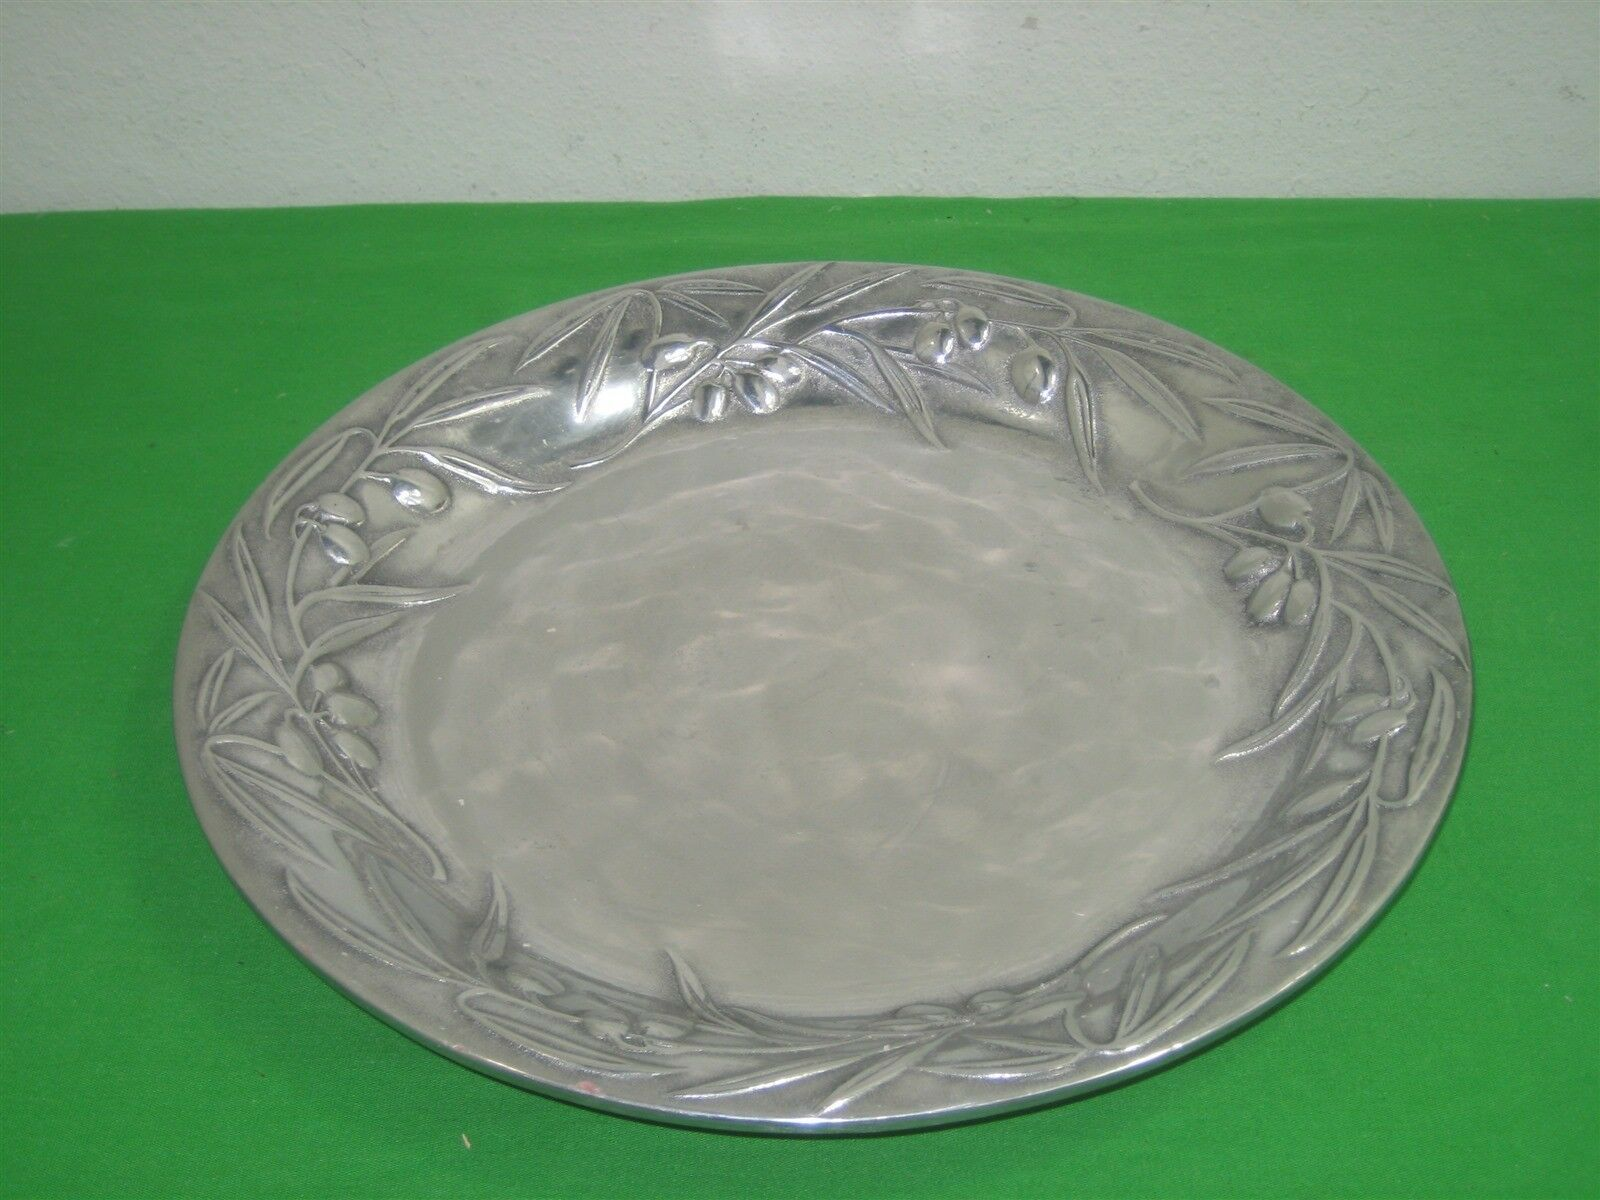 Primary image for Vintage Wilton Armetale Shiny Aluminum Alloy Metal Tray Platter 3D Details 13.75